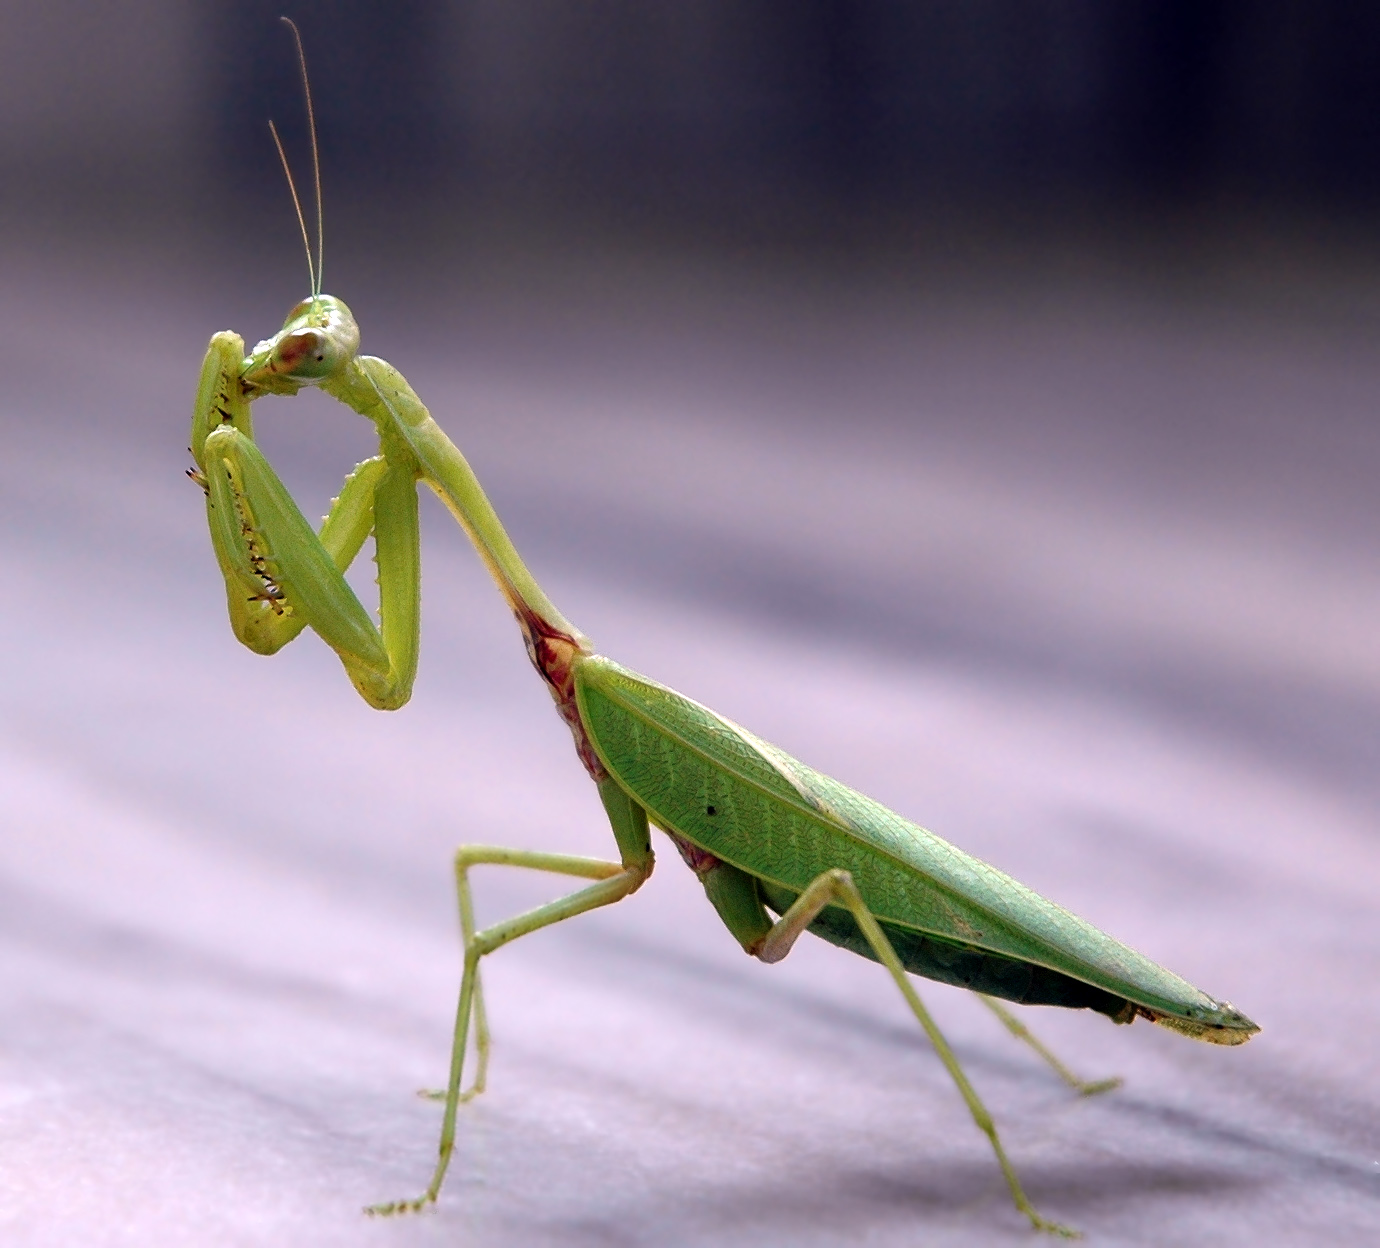 https://upload.wikimedia.org/wikipedia/commons/2/22/Praying_mantis_india.jpg